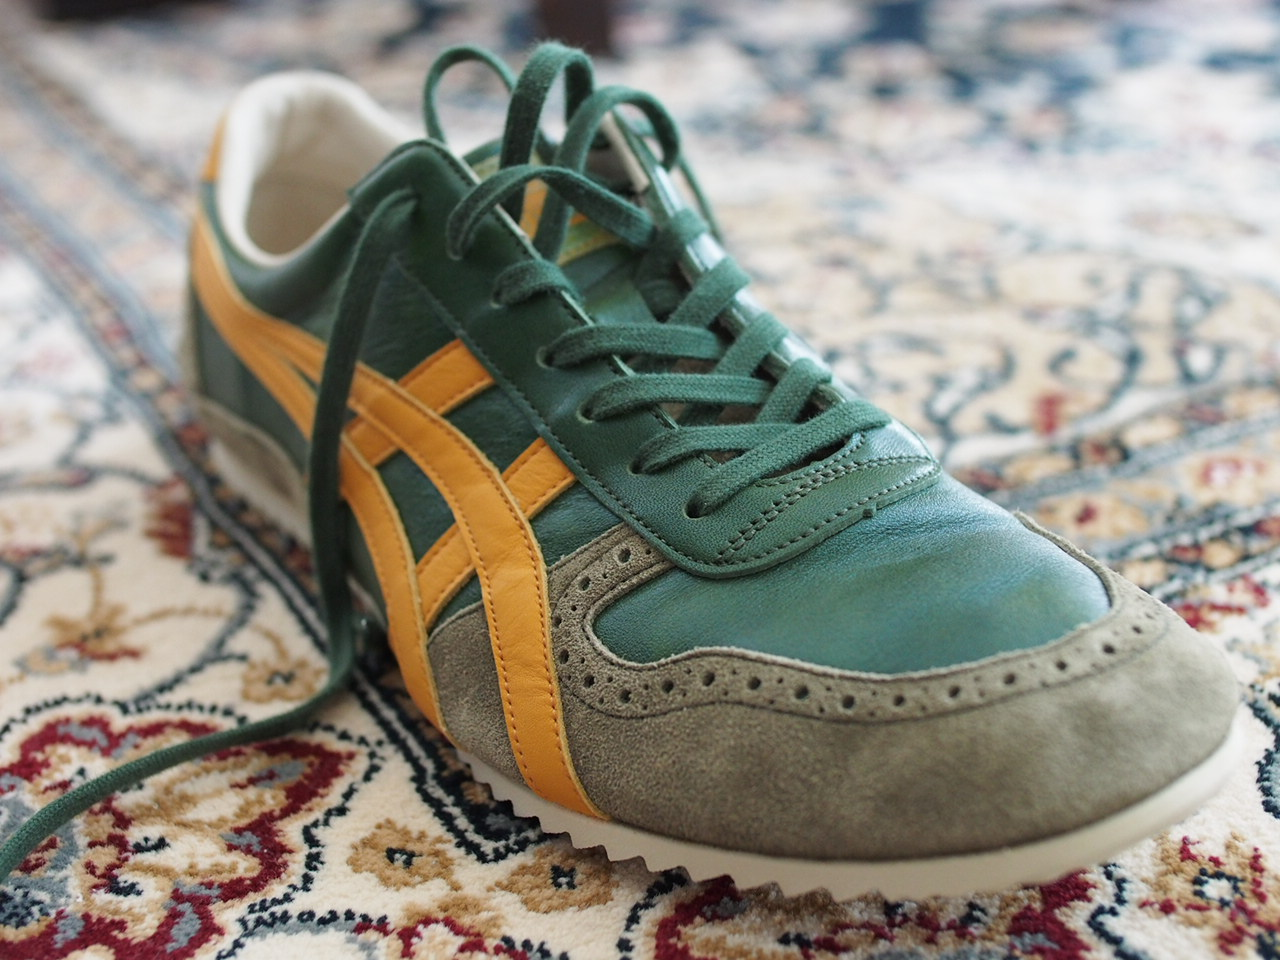 Onitsuka tiger california 78 limited edition nippon-made by.